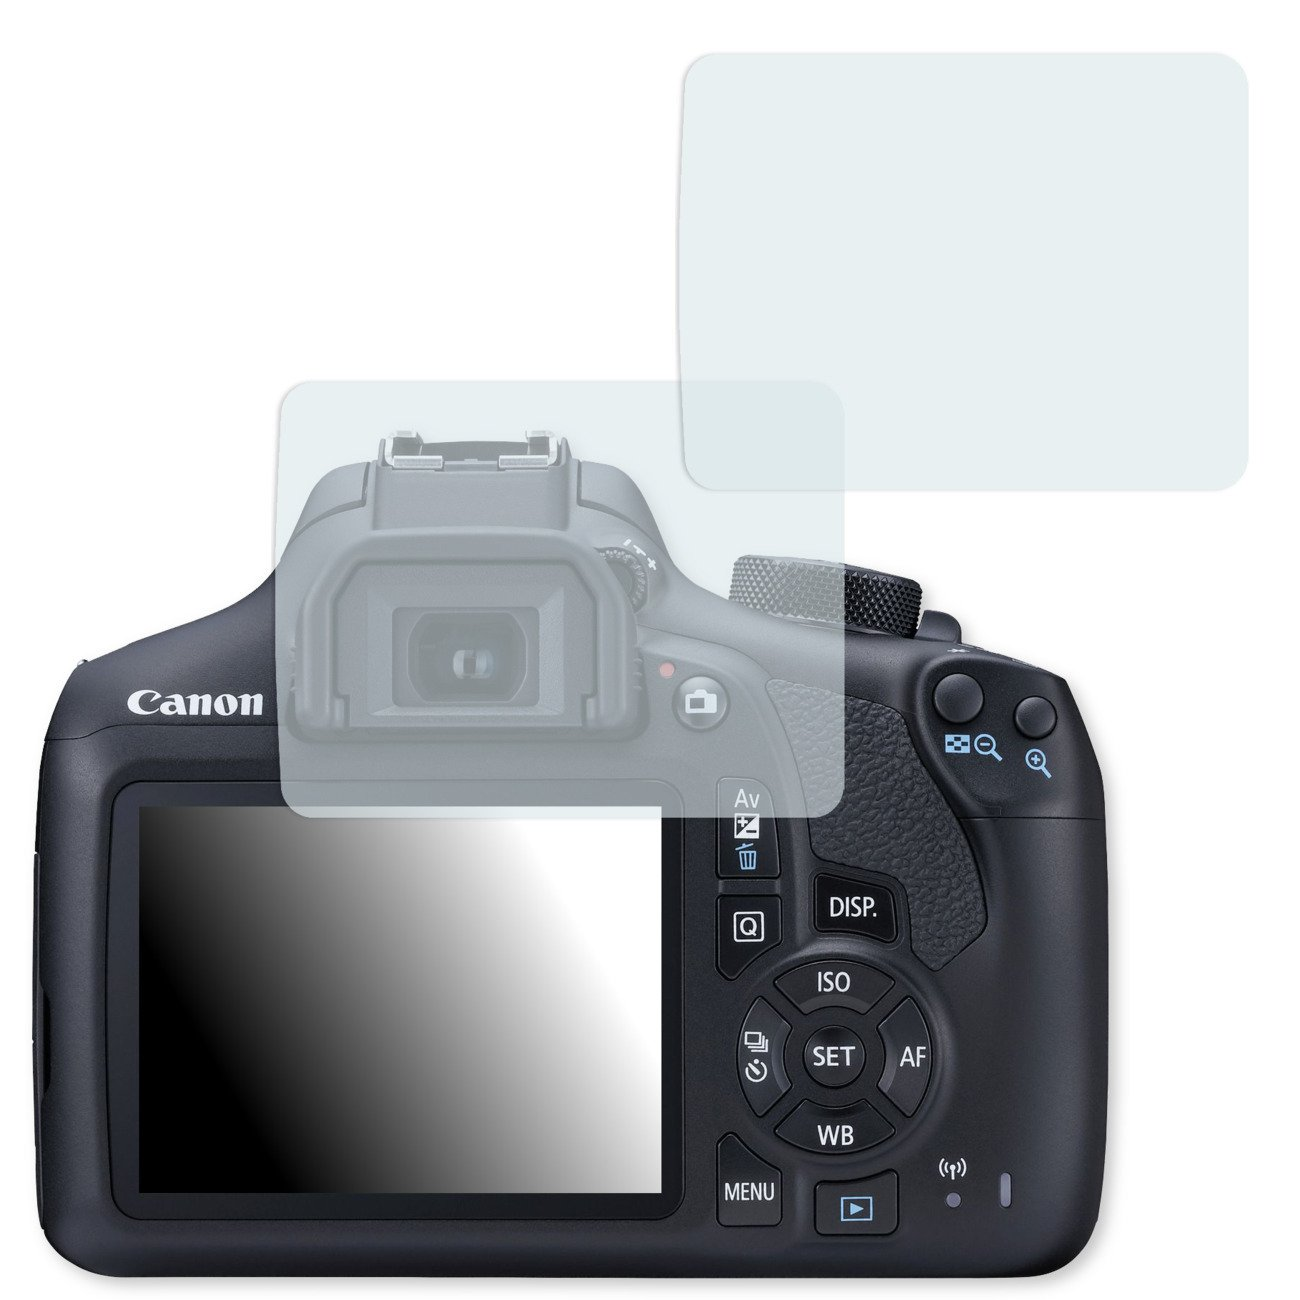 GOLEBO 2X Anti-Glare Screen Protector for Canon EOS 1300D III (Anti-Reflex, Air Pocket Free Application, Easy to Remove)